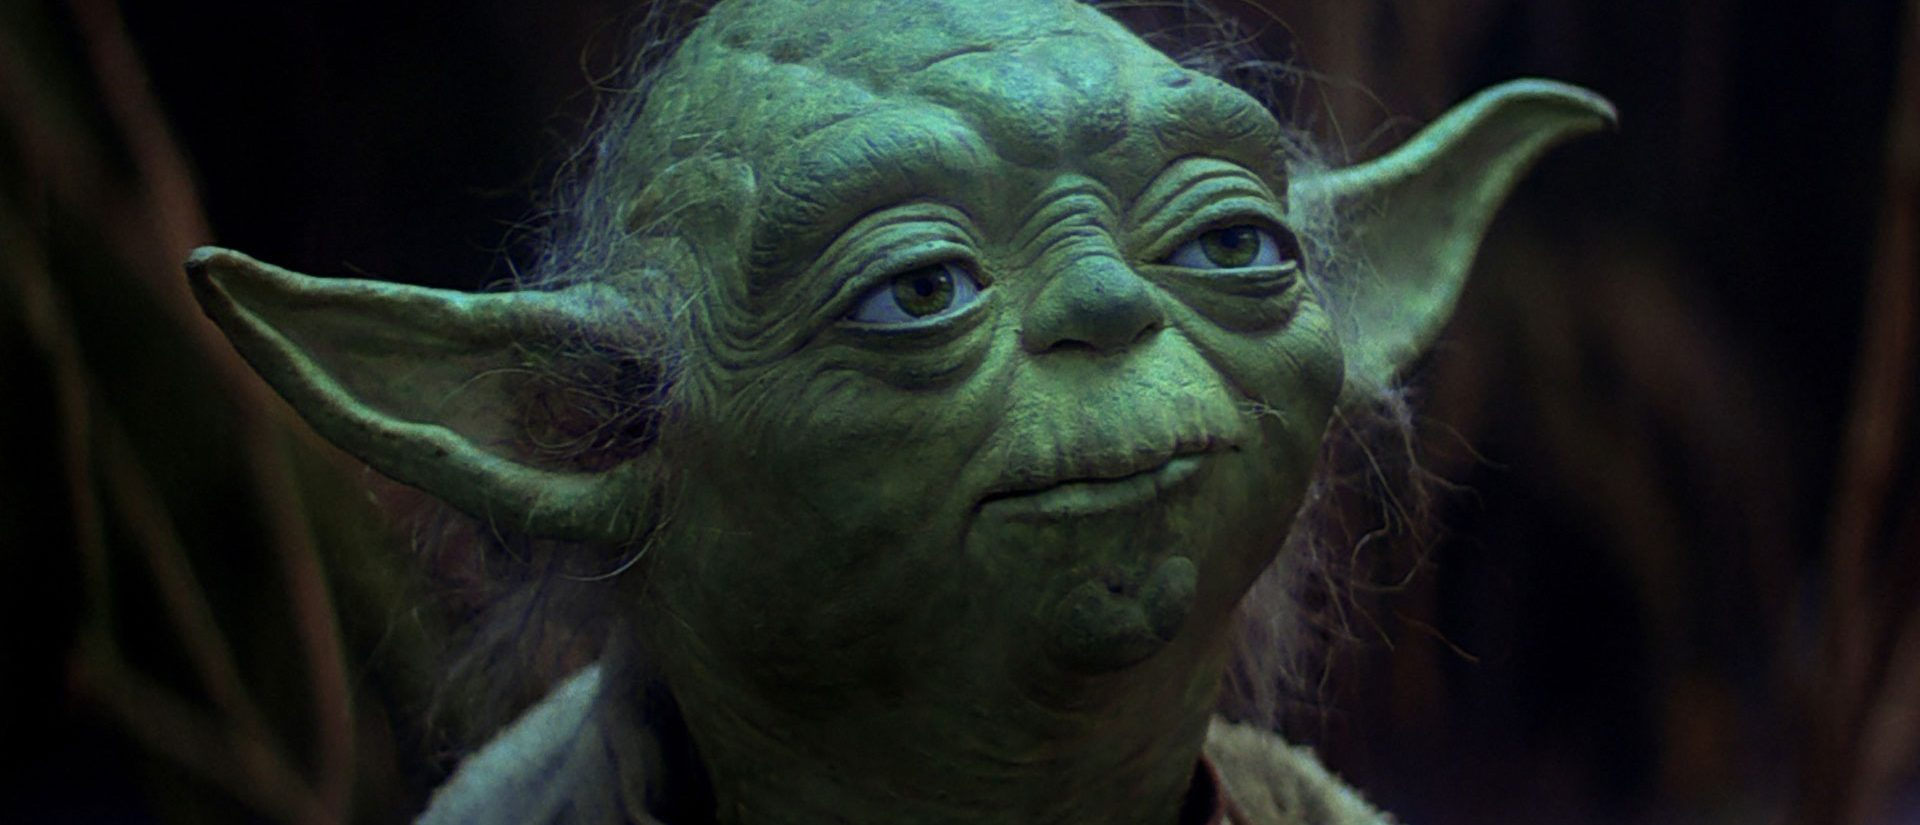 Star Wars Characters Get Remixed Into Singing Hanson's MMMBop And It's Hilarious 1